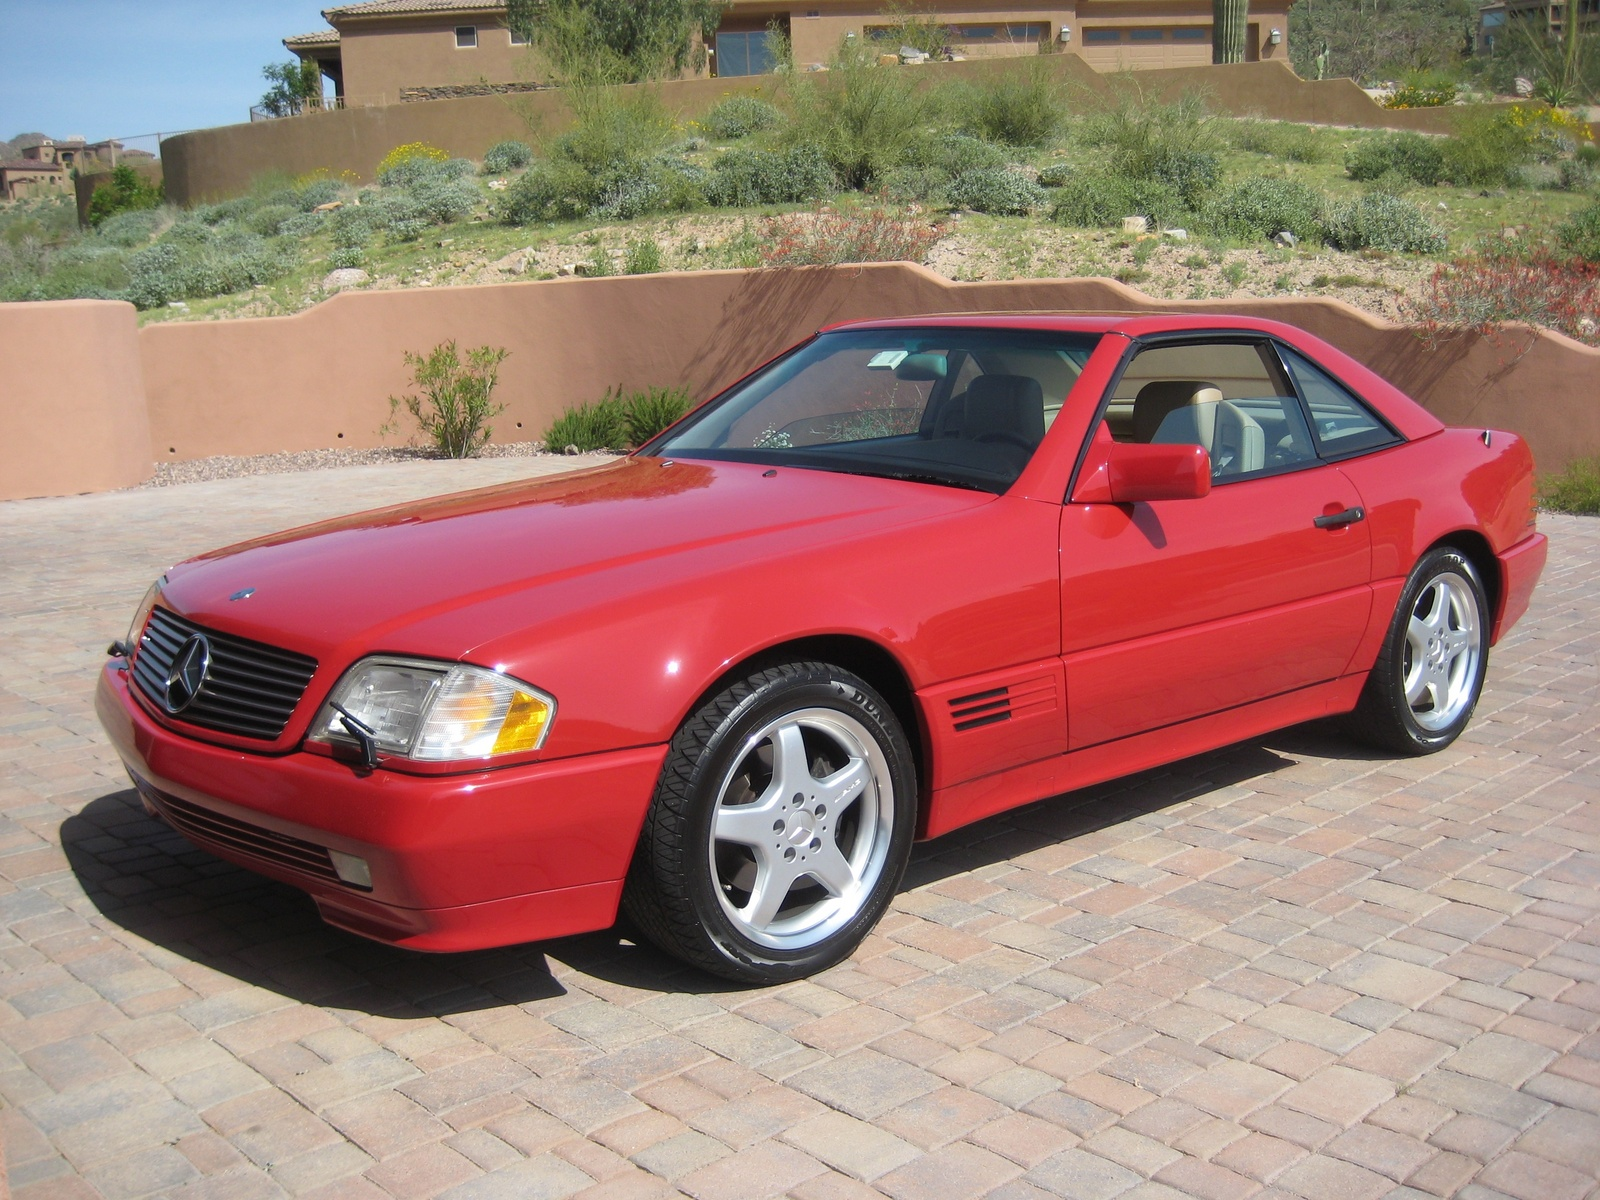 1995 mercedes benz sl class pictures cargurus for Mercedes benz sl class sl500